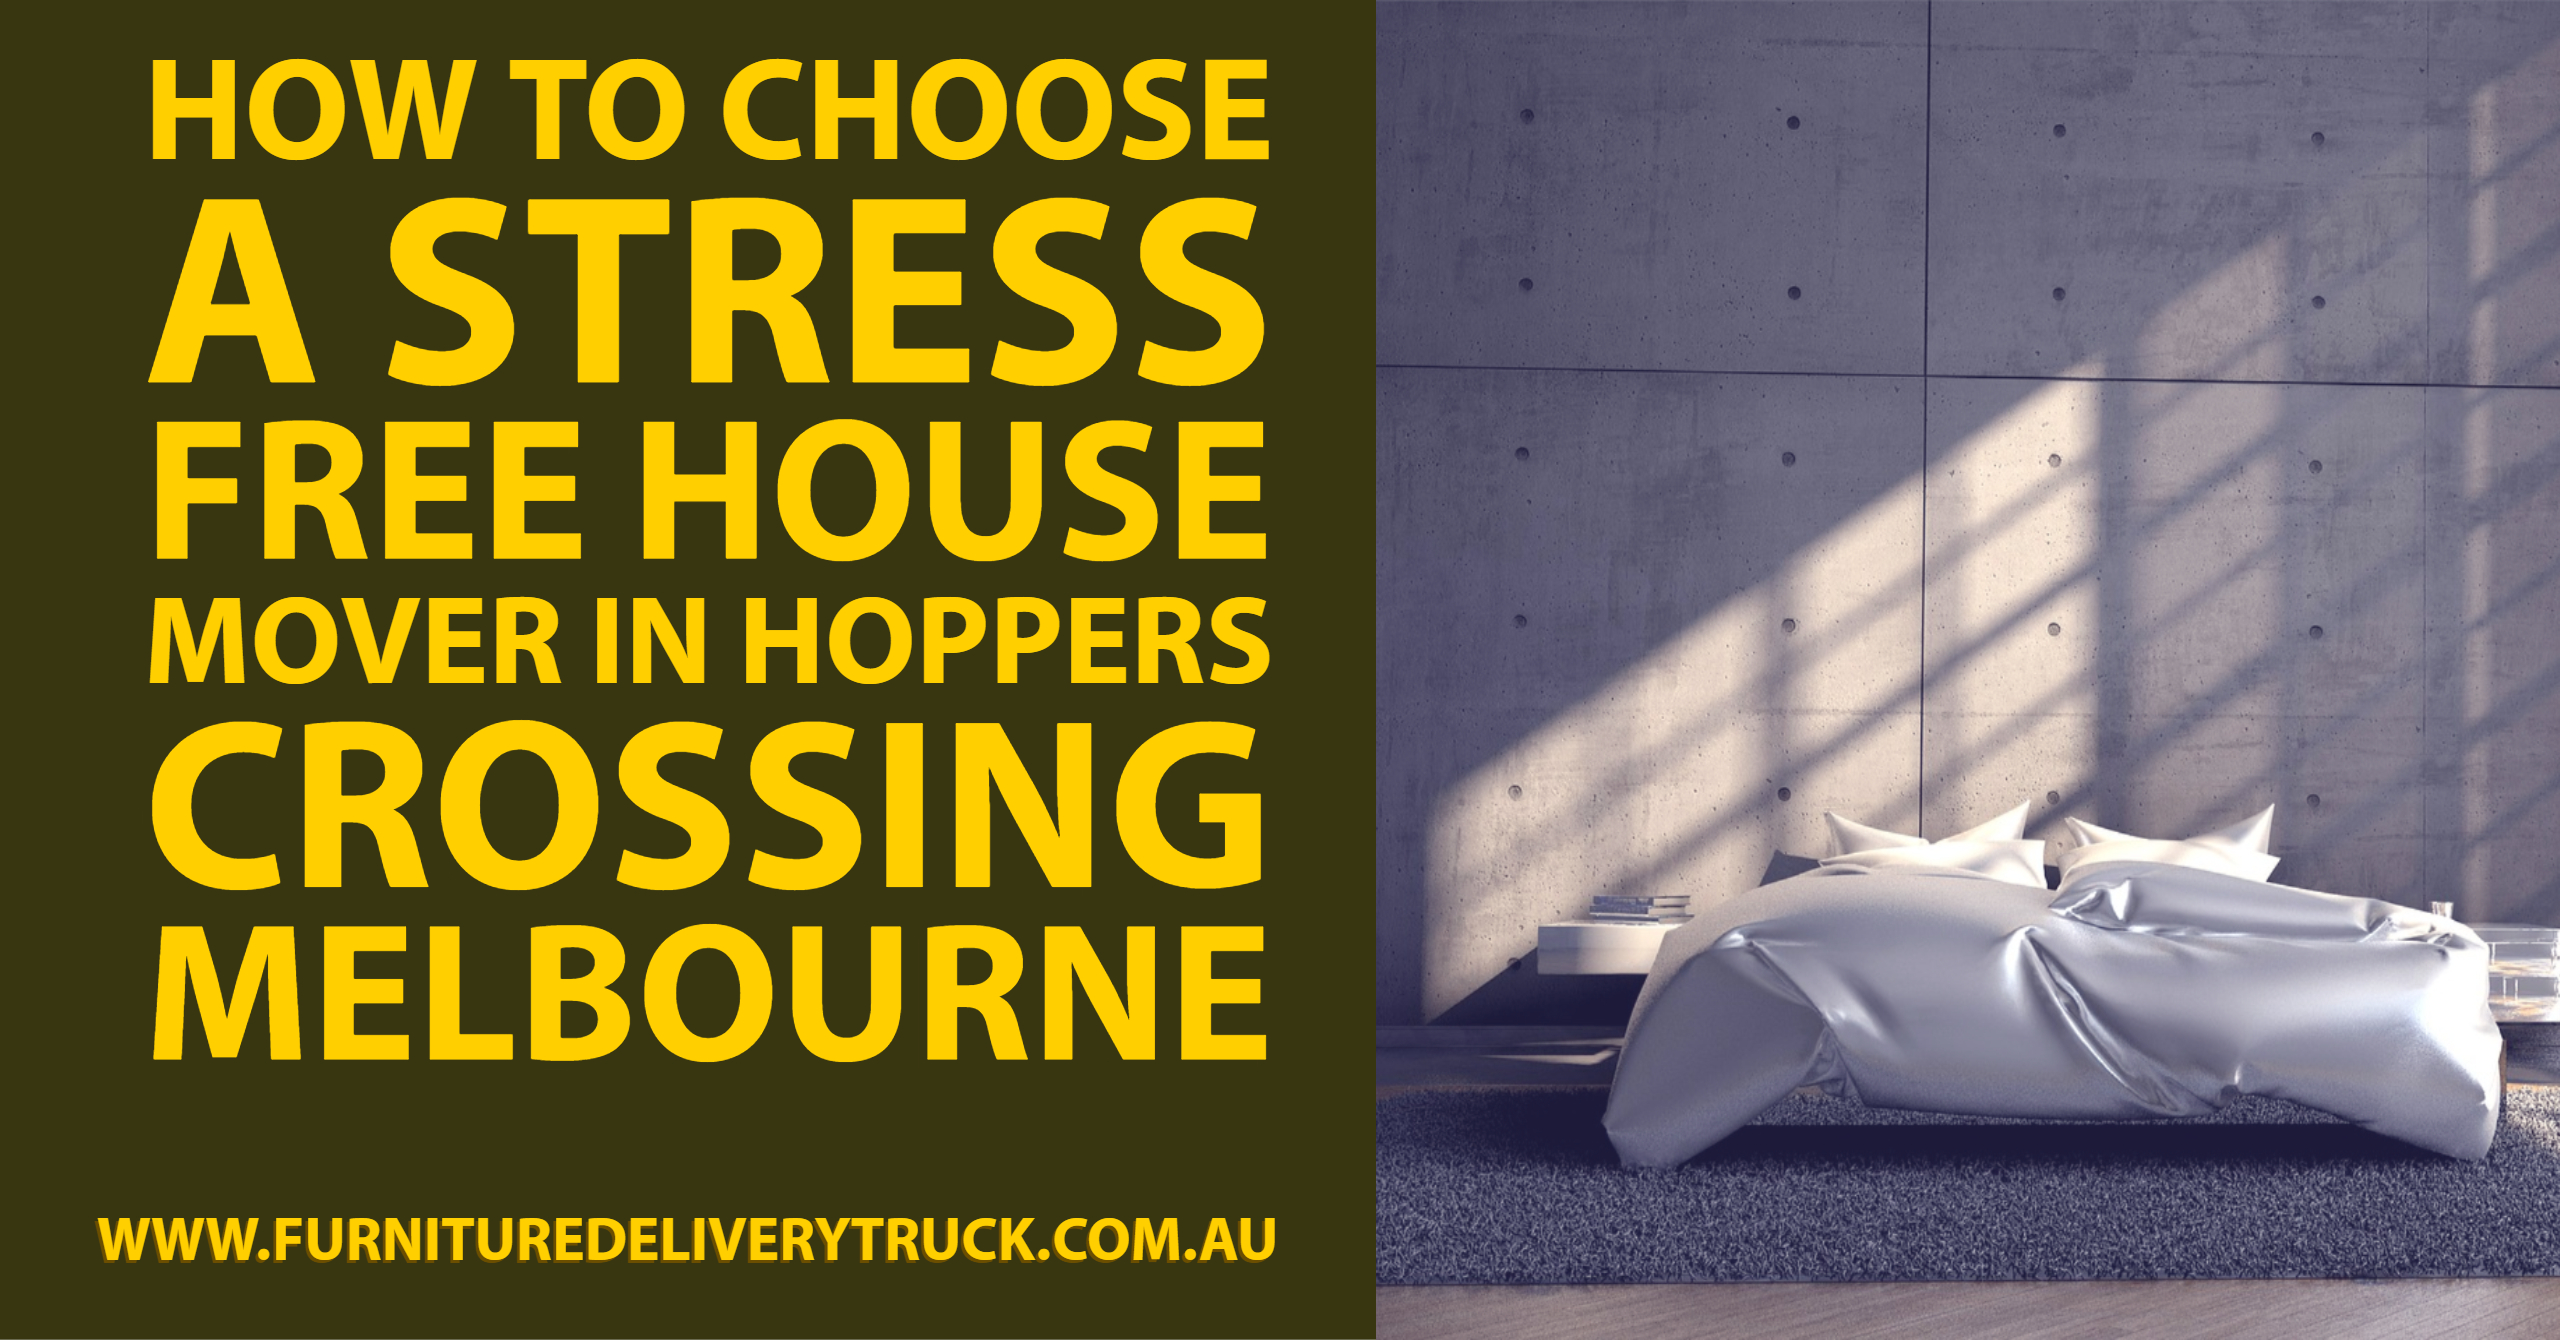 How to Choose a Stress Free House Mover in Hoppers Crossing Melbourne